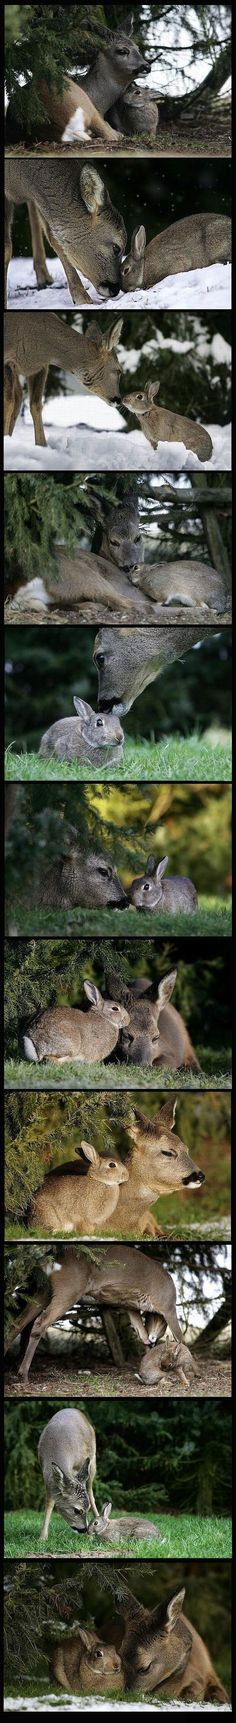 Large pointy eared animal love!